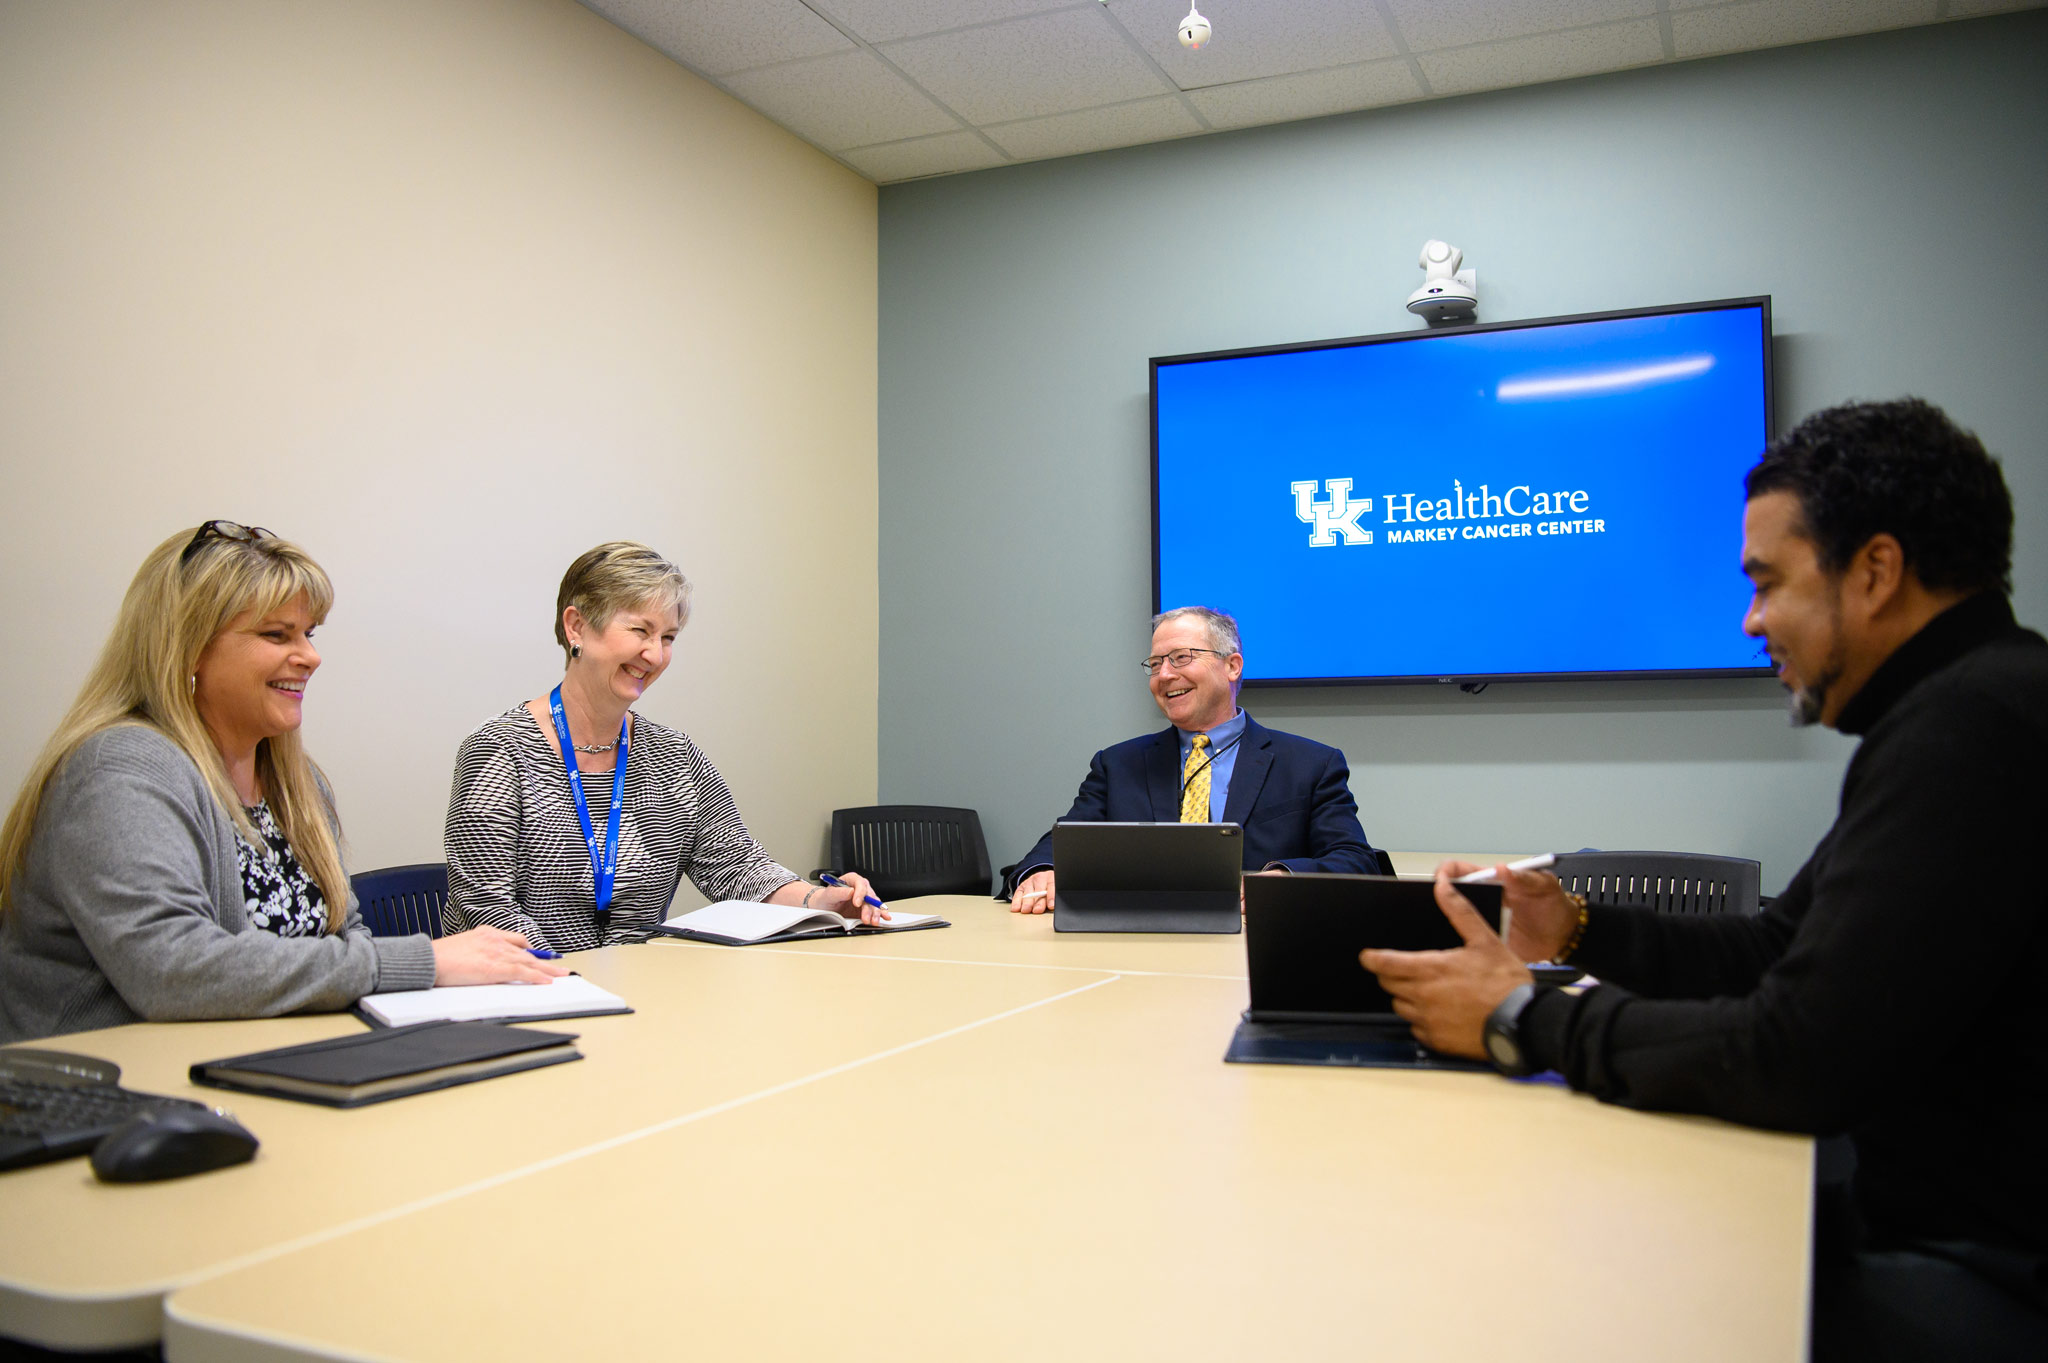 Dr. Mullett and his colleagues smile during a meeting together.